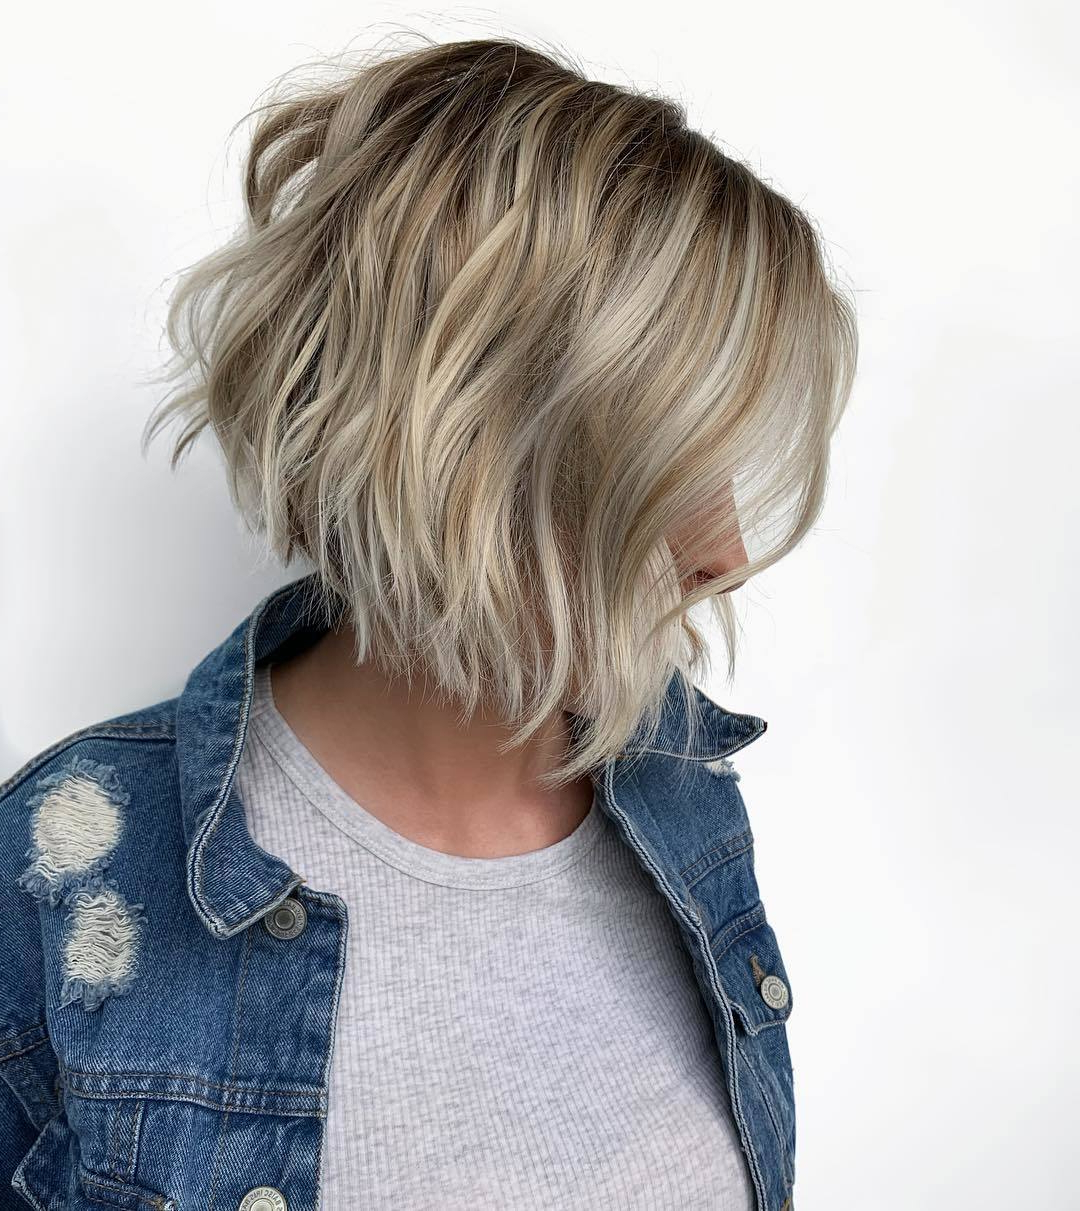 Most Recent Choppy Bright Blonde Bob Hairstyles With Regard To 20 Hot Graduated Bob Styles For Women Of All Ages (View 15 of 20)